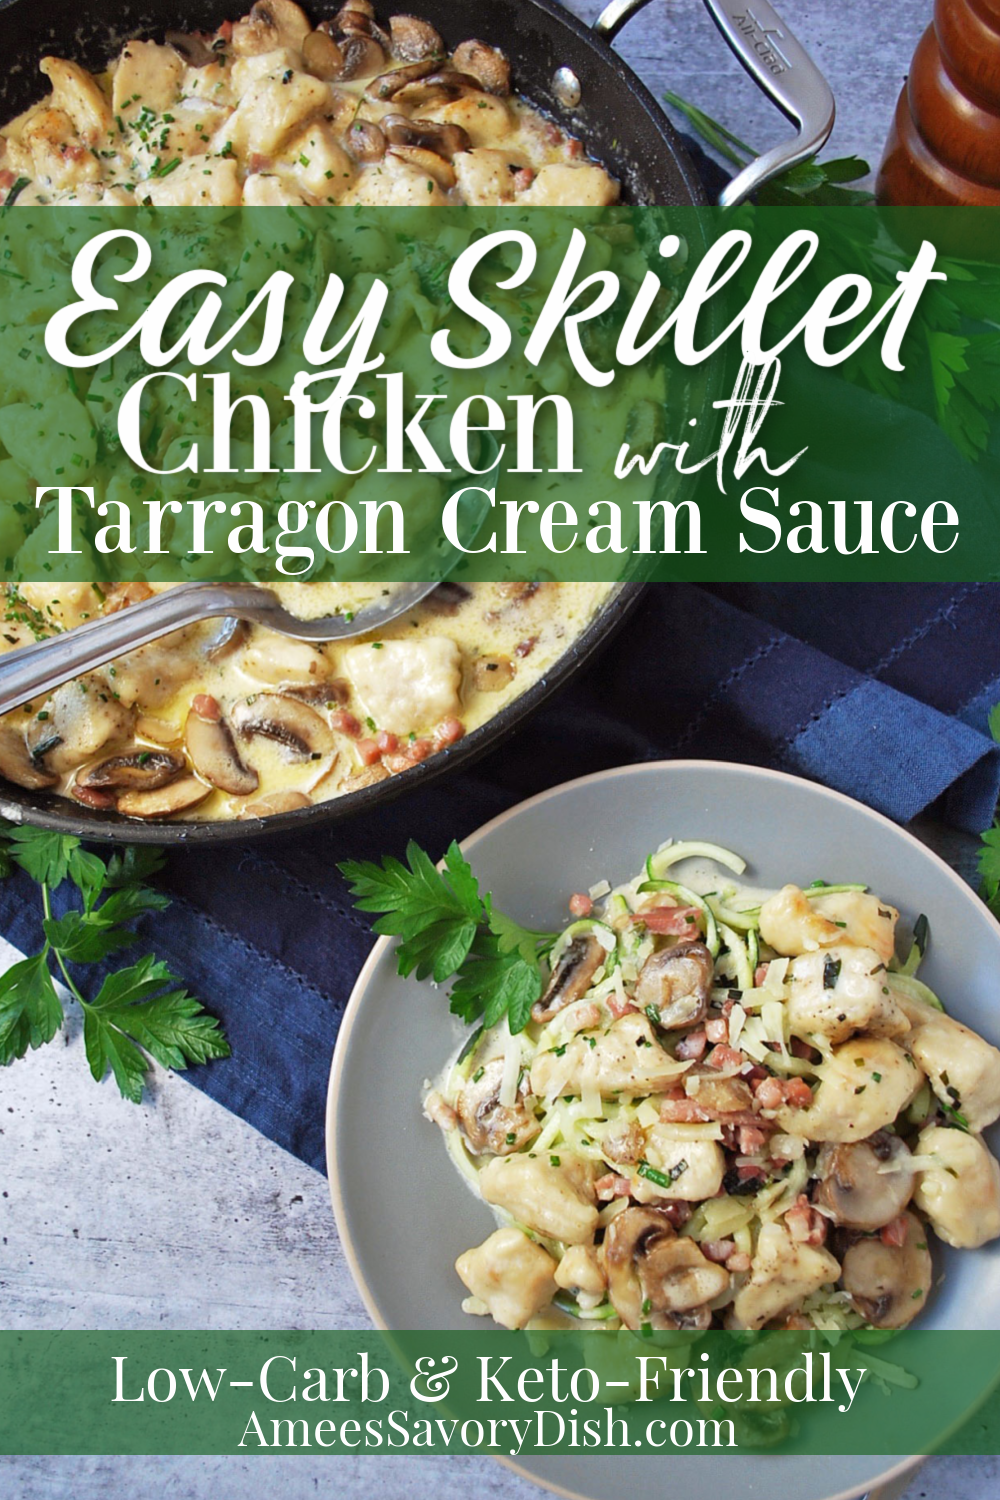 This low-carb and keto diet-friendly skillet Tarragon chicken recipe is made with boneless skinless chicken breasts, prosciutto ham, mushrooms, dry white wine (or chicken broth), cream, and fresh herbs. Best of all this skillet chicken recipe is easy to make and ready in 30 minutes!#skilletmeals #skilletchicken #ketorecipe #ketodiet #lowcarb #lowcarbchicken #easychickenrecipes via @Ameessavorydish